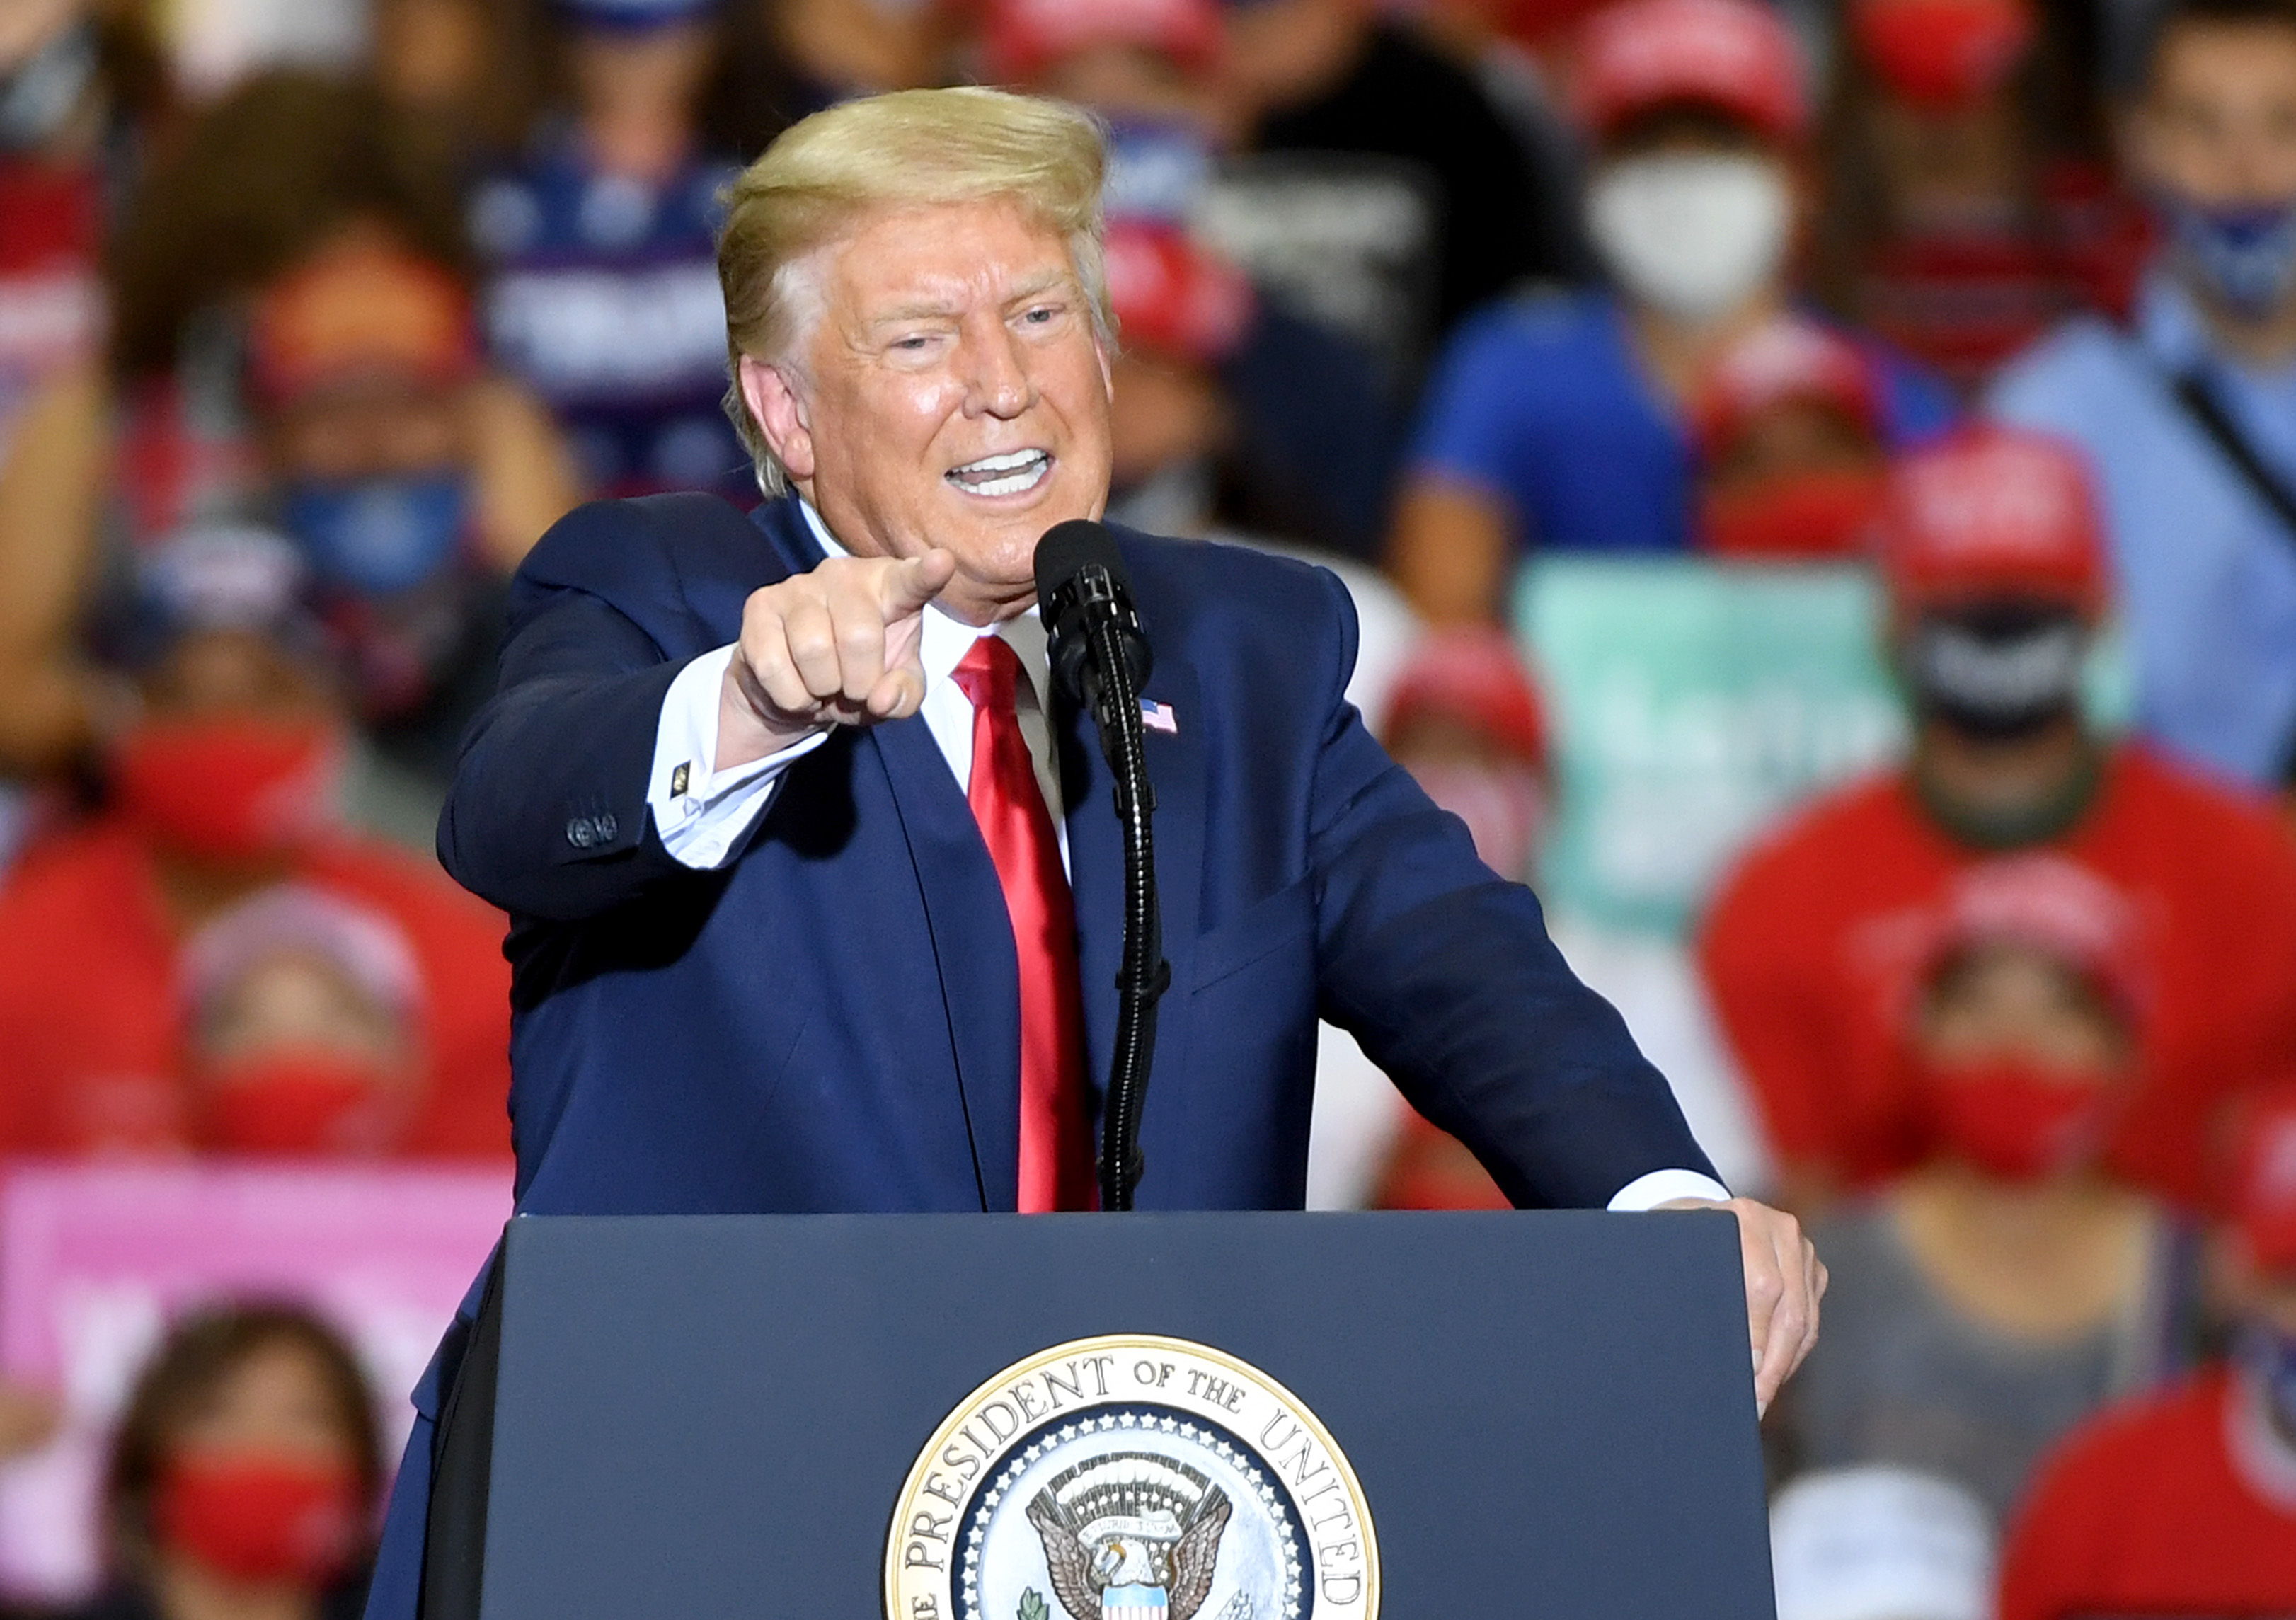 HENDERSON, NEVADA - SEPTEMBER 13:  U.S. President Donald Trump speaks during a campaign event at Xtreme Manufacturing on September 13, 2020 in Henderson, Nevada. Trump's visit comes after Nevada Republicans blamed Democratic Nevada Gov. Steve Sisolak for blocking other events he had planned in the state.  (Photo by Ethan Miller/Getty Images)